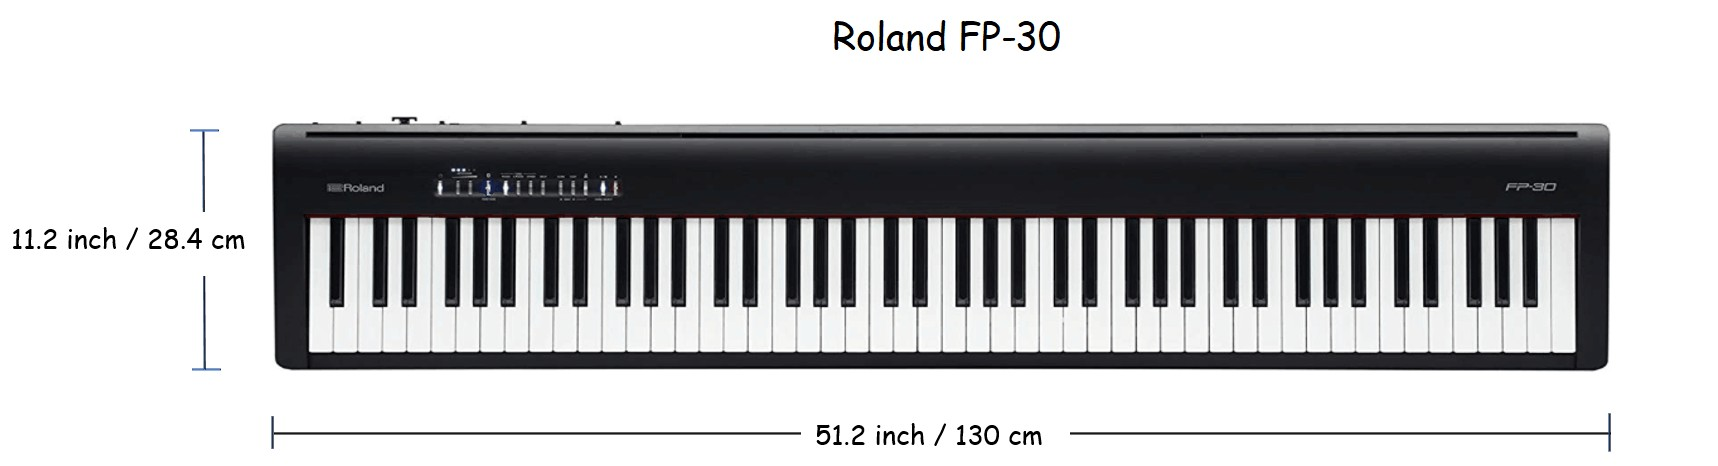 Roland fp 30 dimensions